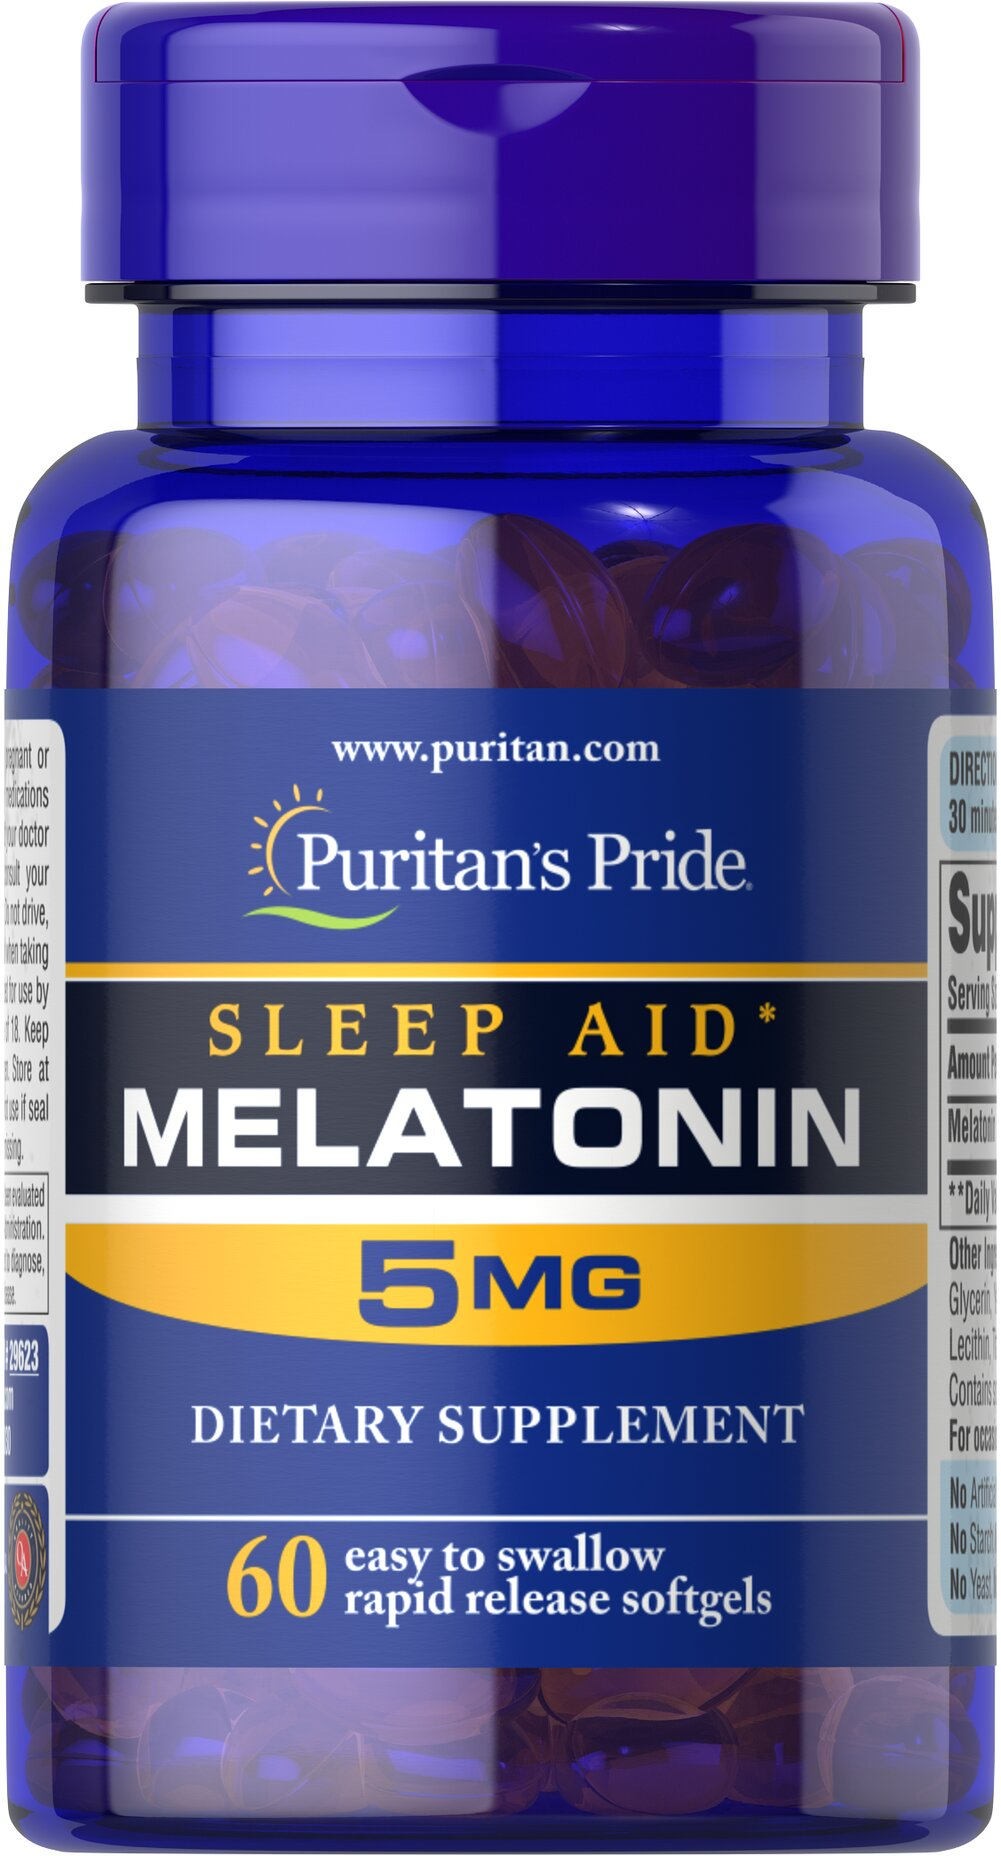 Extra Strength Melatonin 5 mg <p>• Extra Strength Melatonin is excellent for those experiencing jet lag or occasional sleeplessness.**</p> <p>• Melatoin helps maintain nighttime blood pressure levels already within a normal range, which may contribute to restful sleep.** </p> <p>• Convenient Rapid Release Softgel</p> 60 Softgels 5 mg $5.99